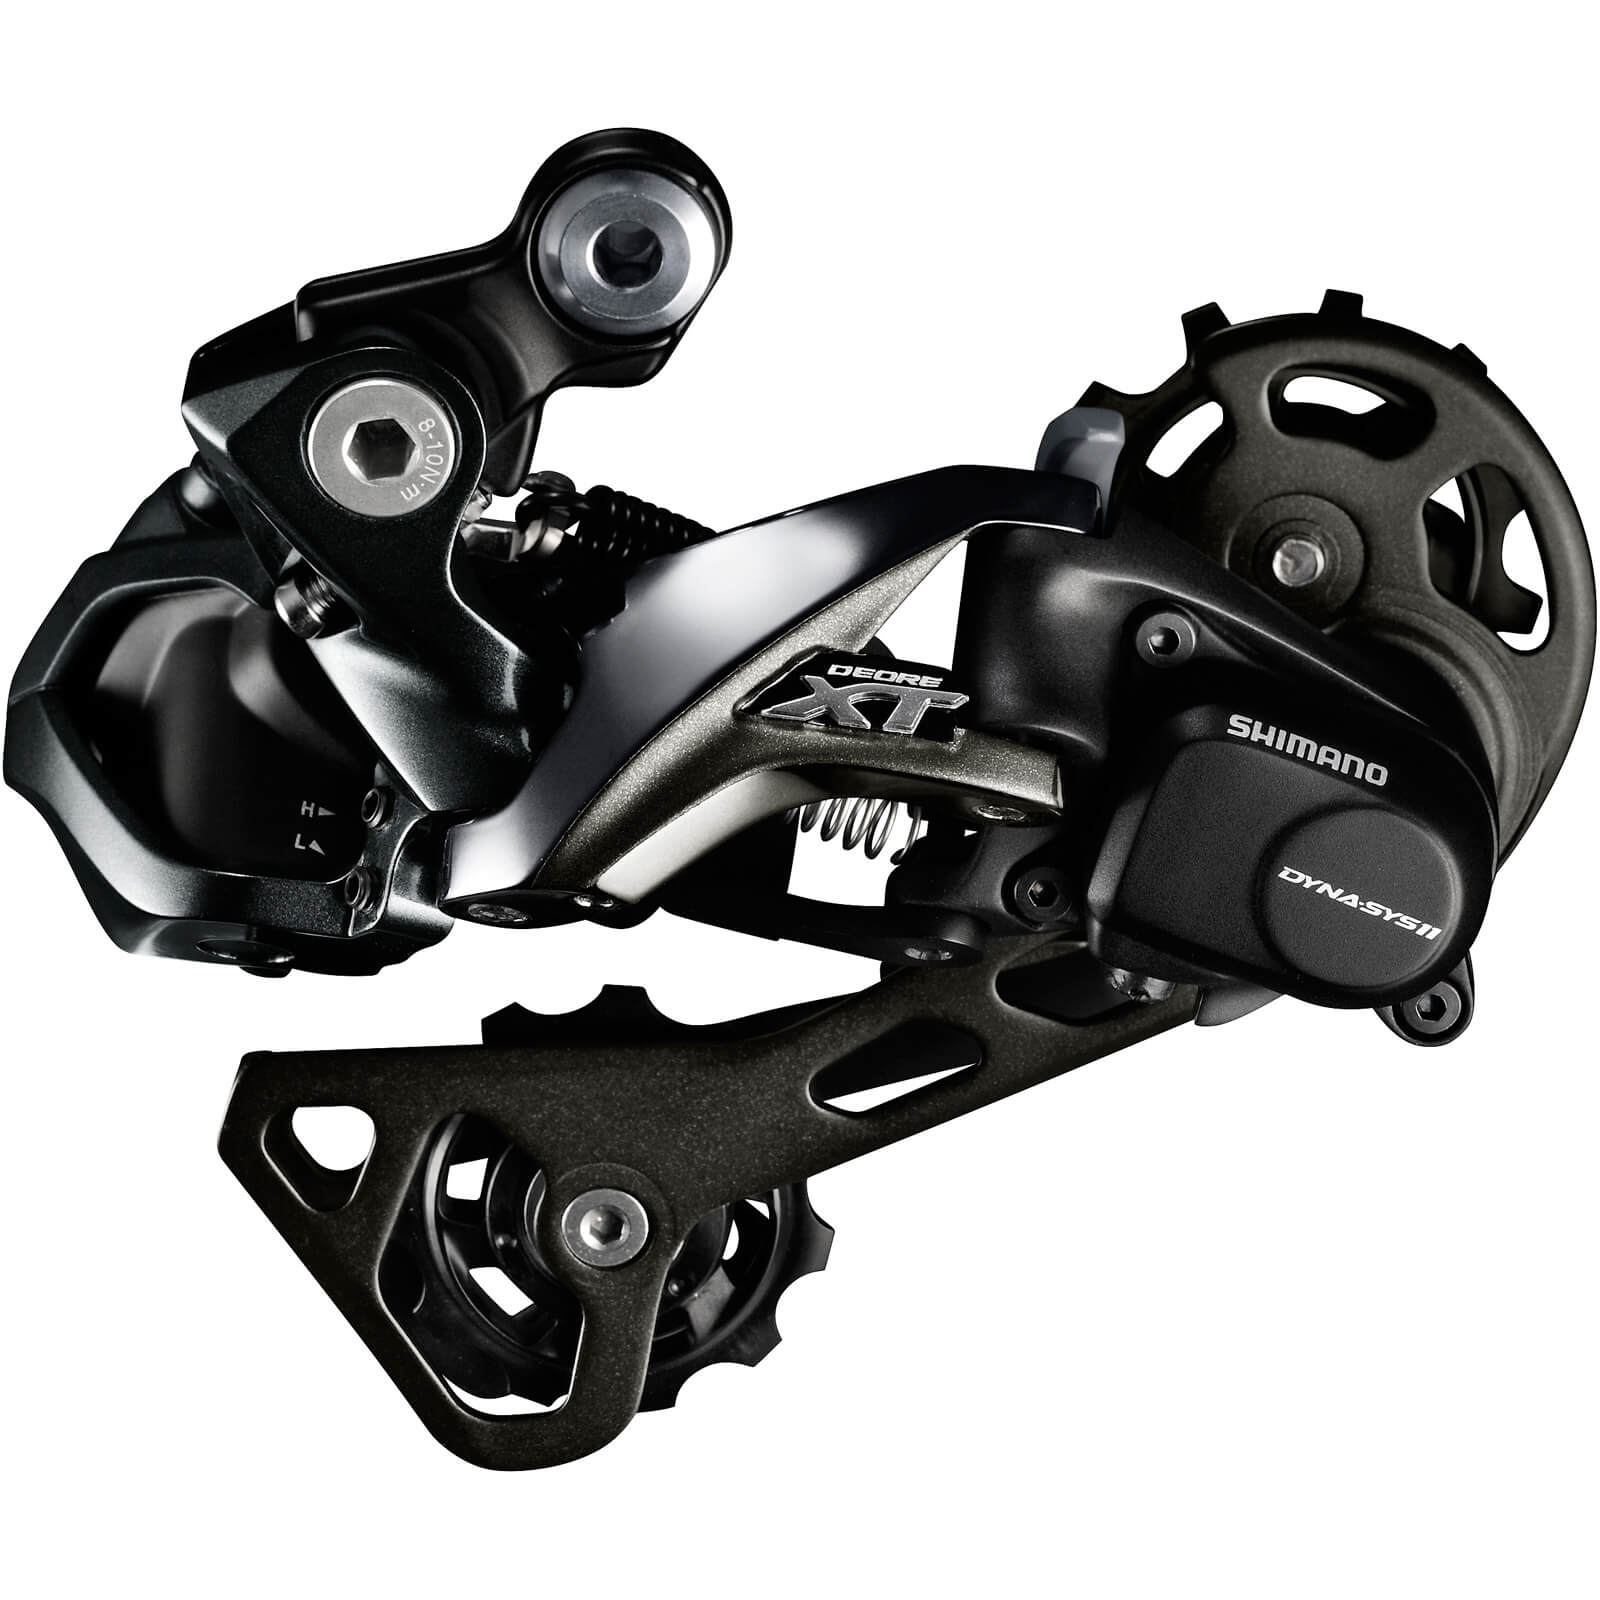 Shimano RD-M8050 XT Di2 E-Tube Rear Derailleur - GS Medium Cage - Shadow+ 11-Speed